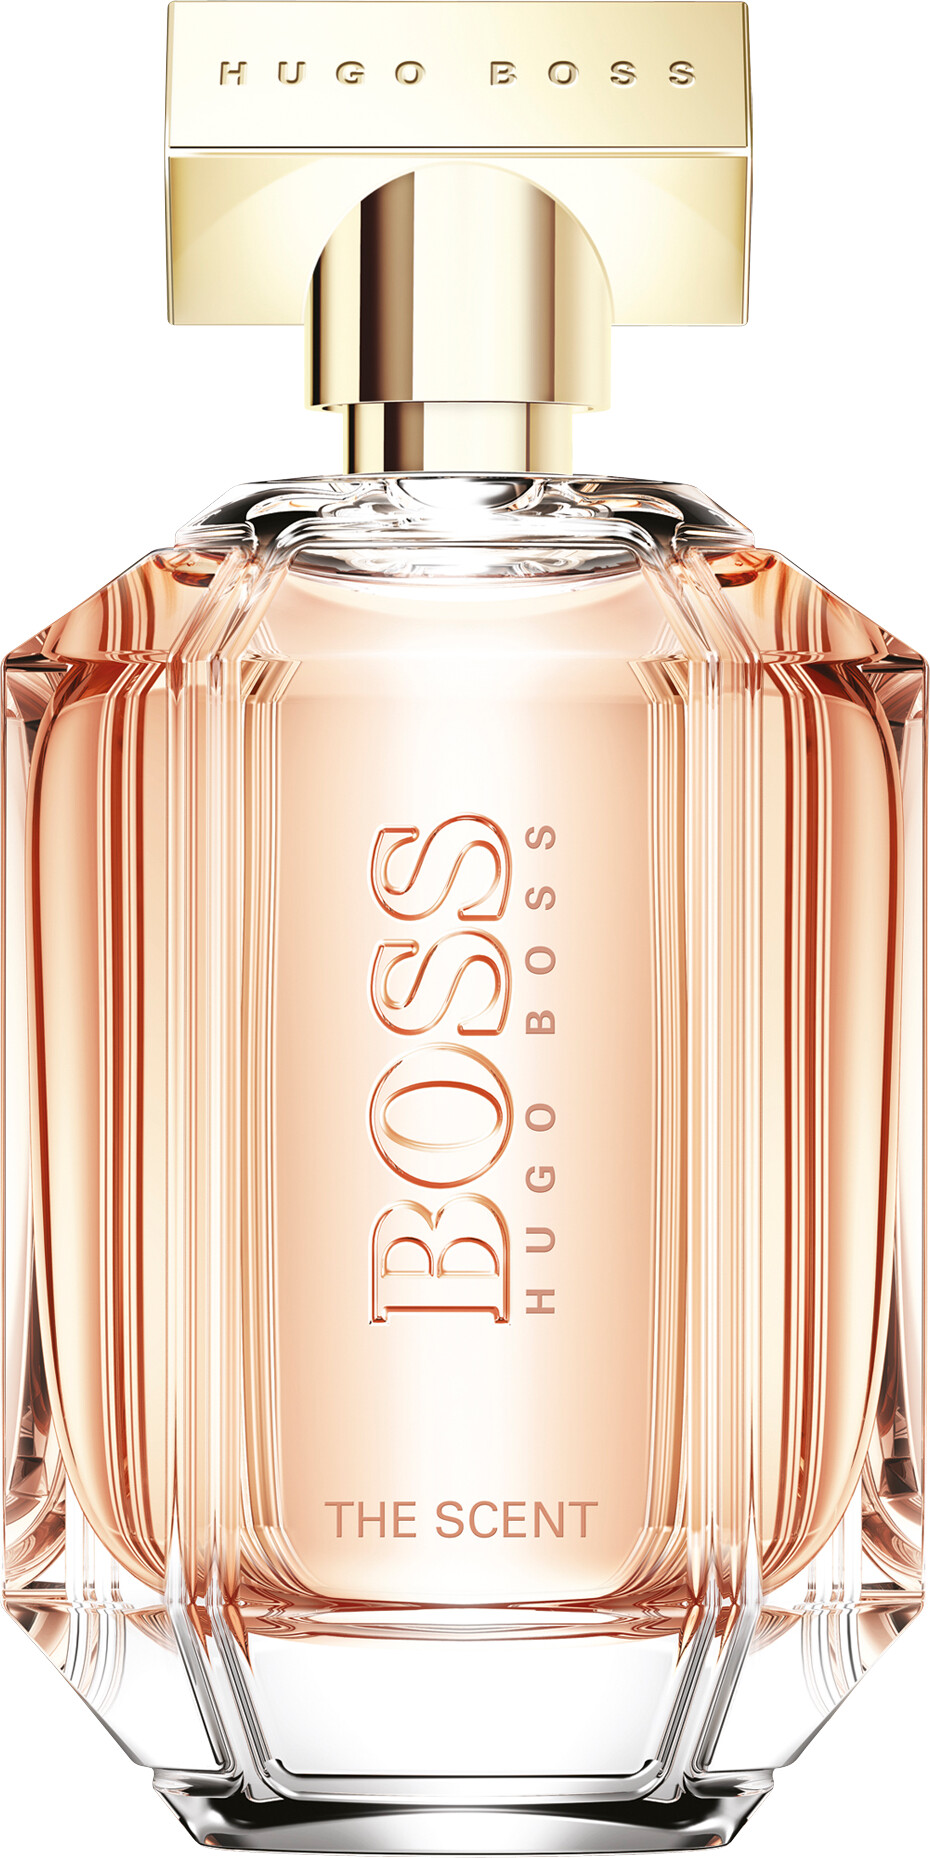 0f990fe6c46 HUGO BOSS BOSS The Scent For Her Eau de Parfum Spray 100ml ...